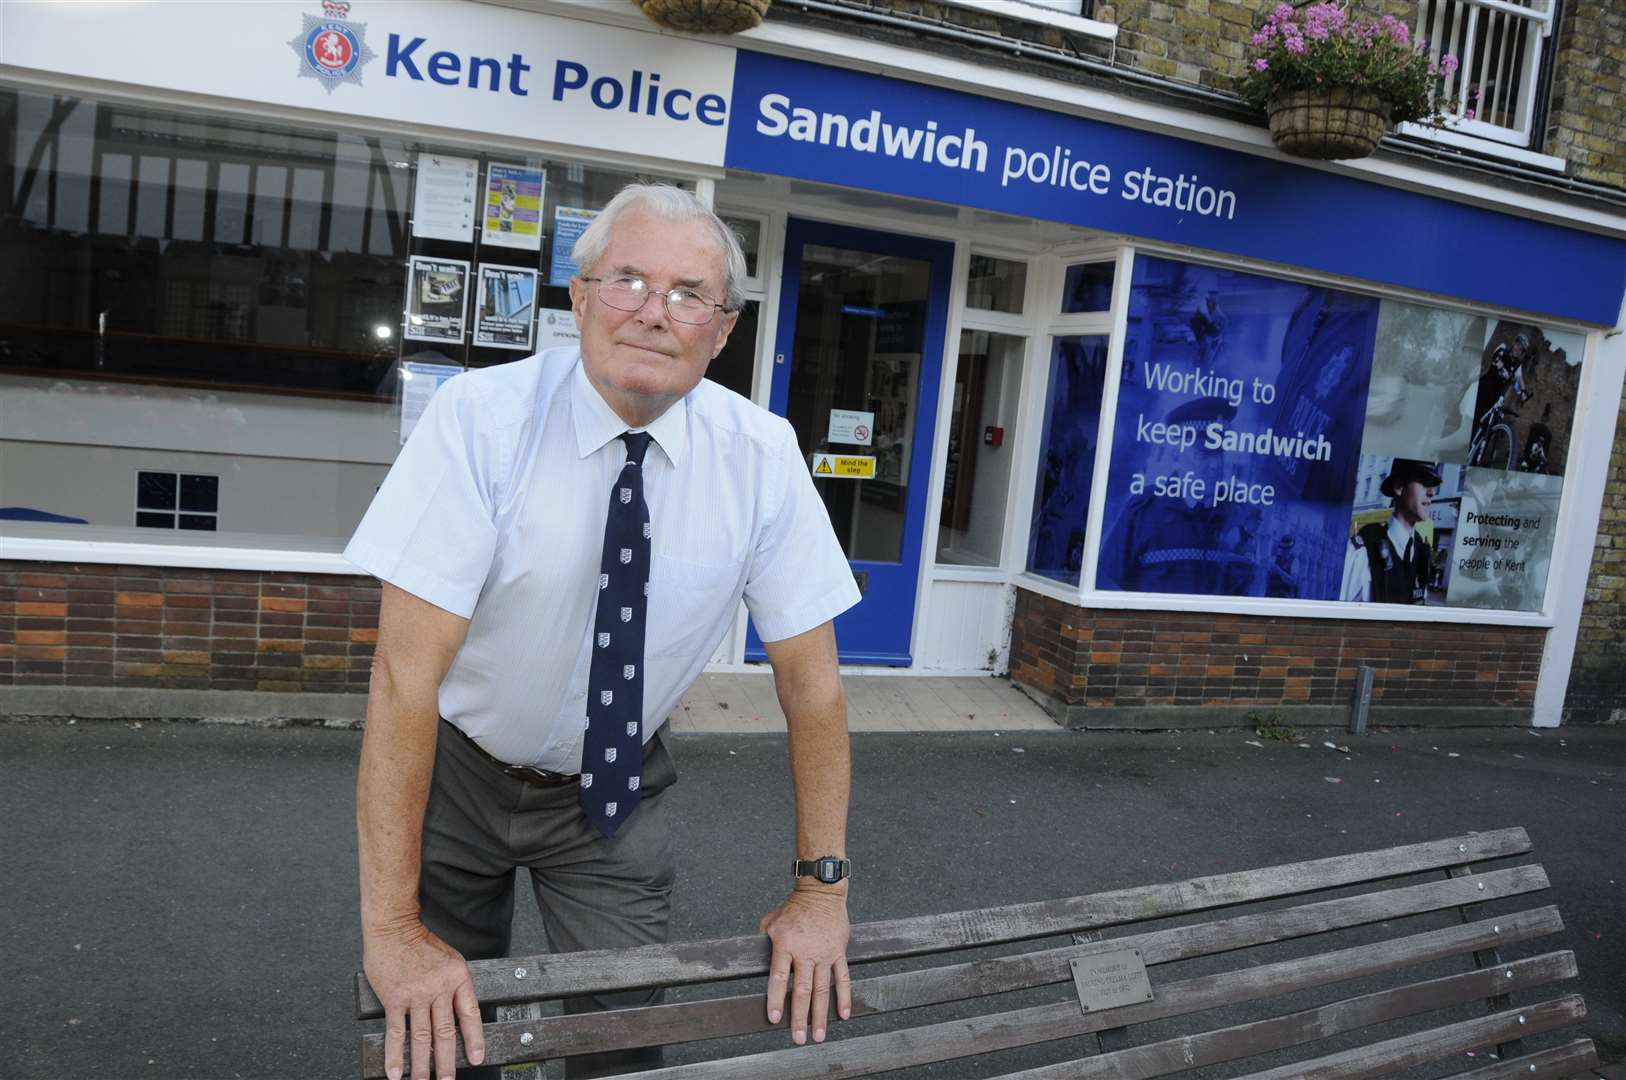 Then Mayor of Sandwich Cllr Jeremy Watts outside Sandwich Police Station before it was due to close